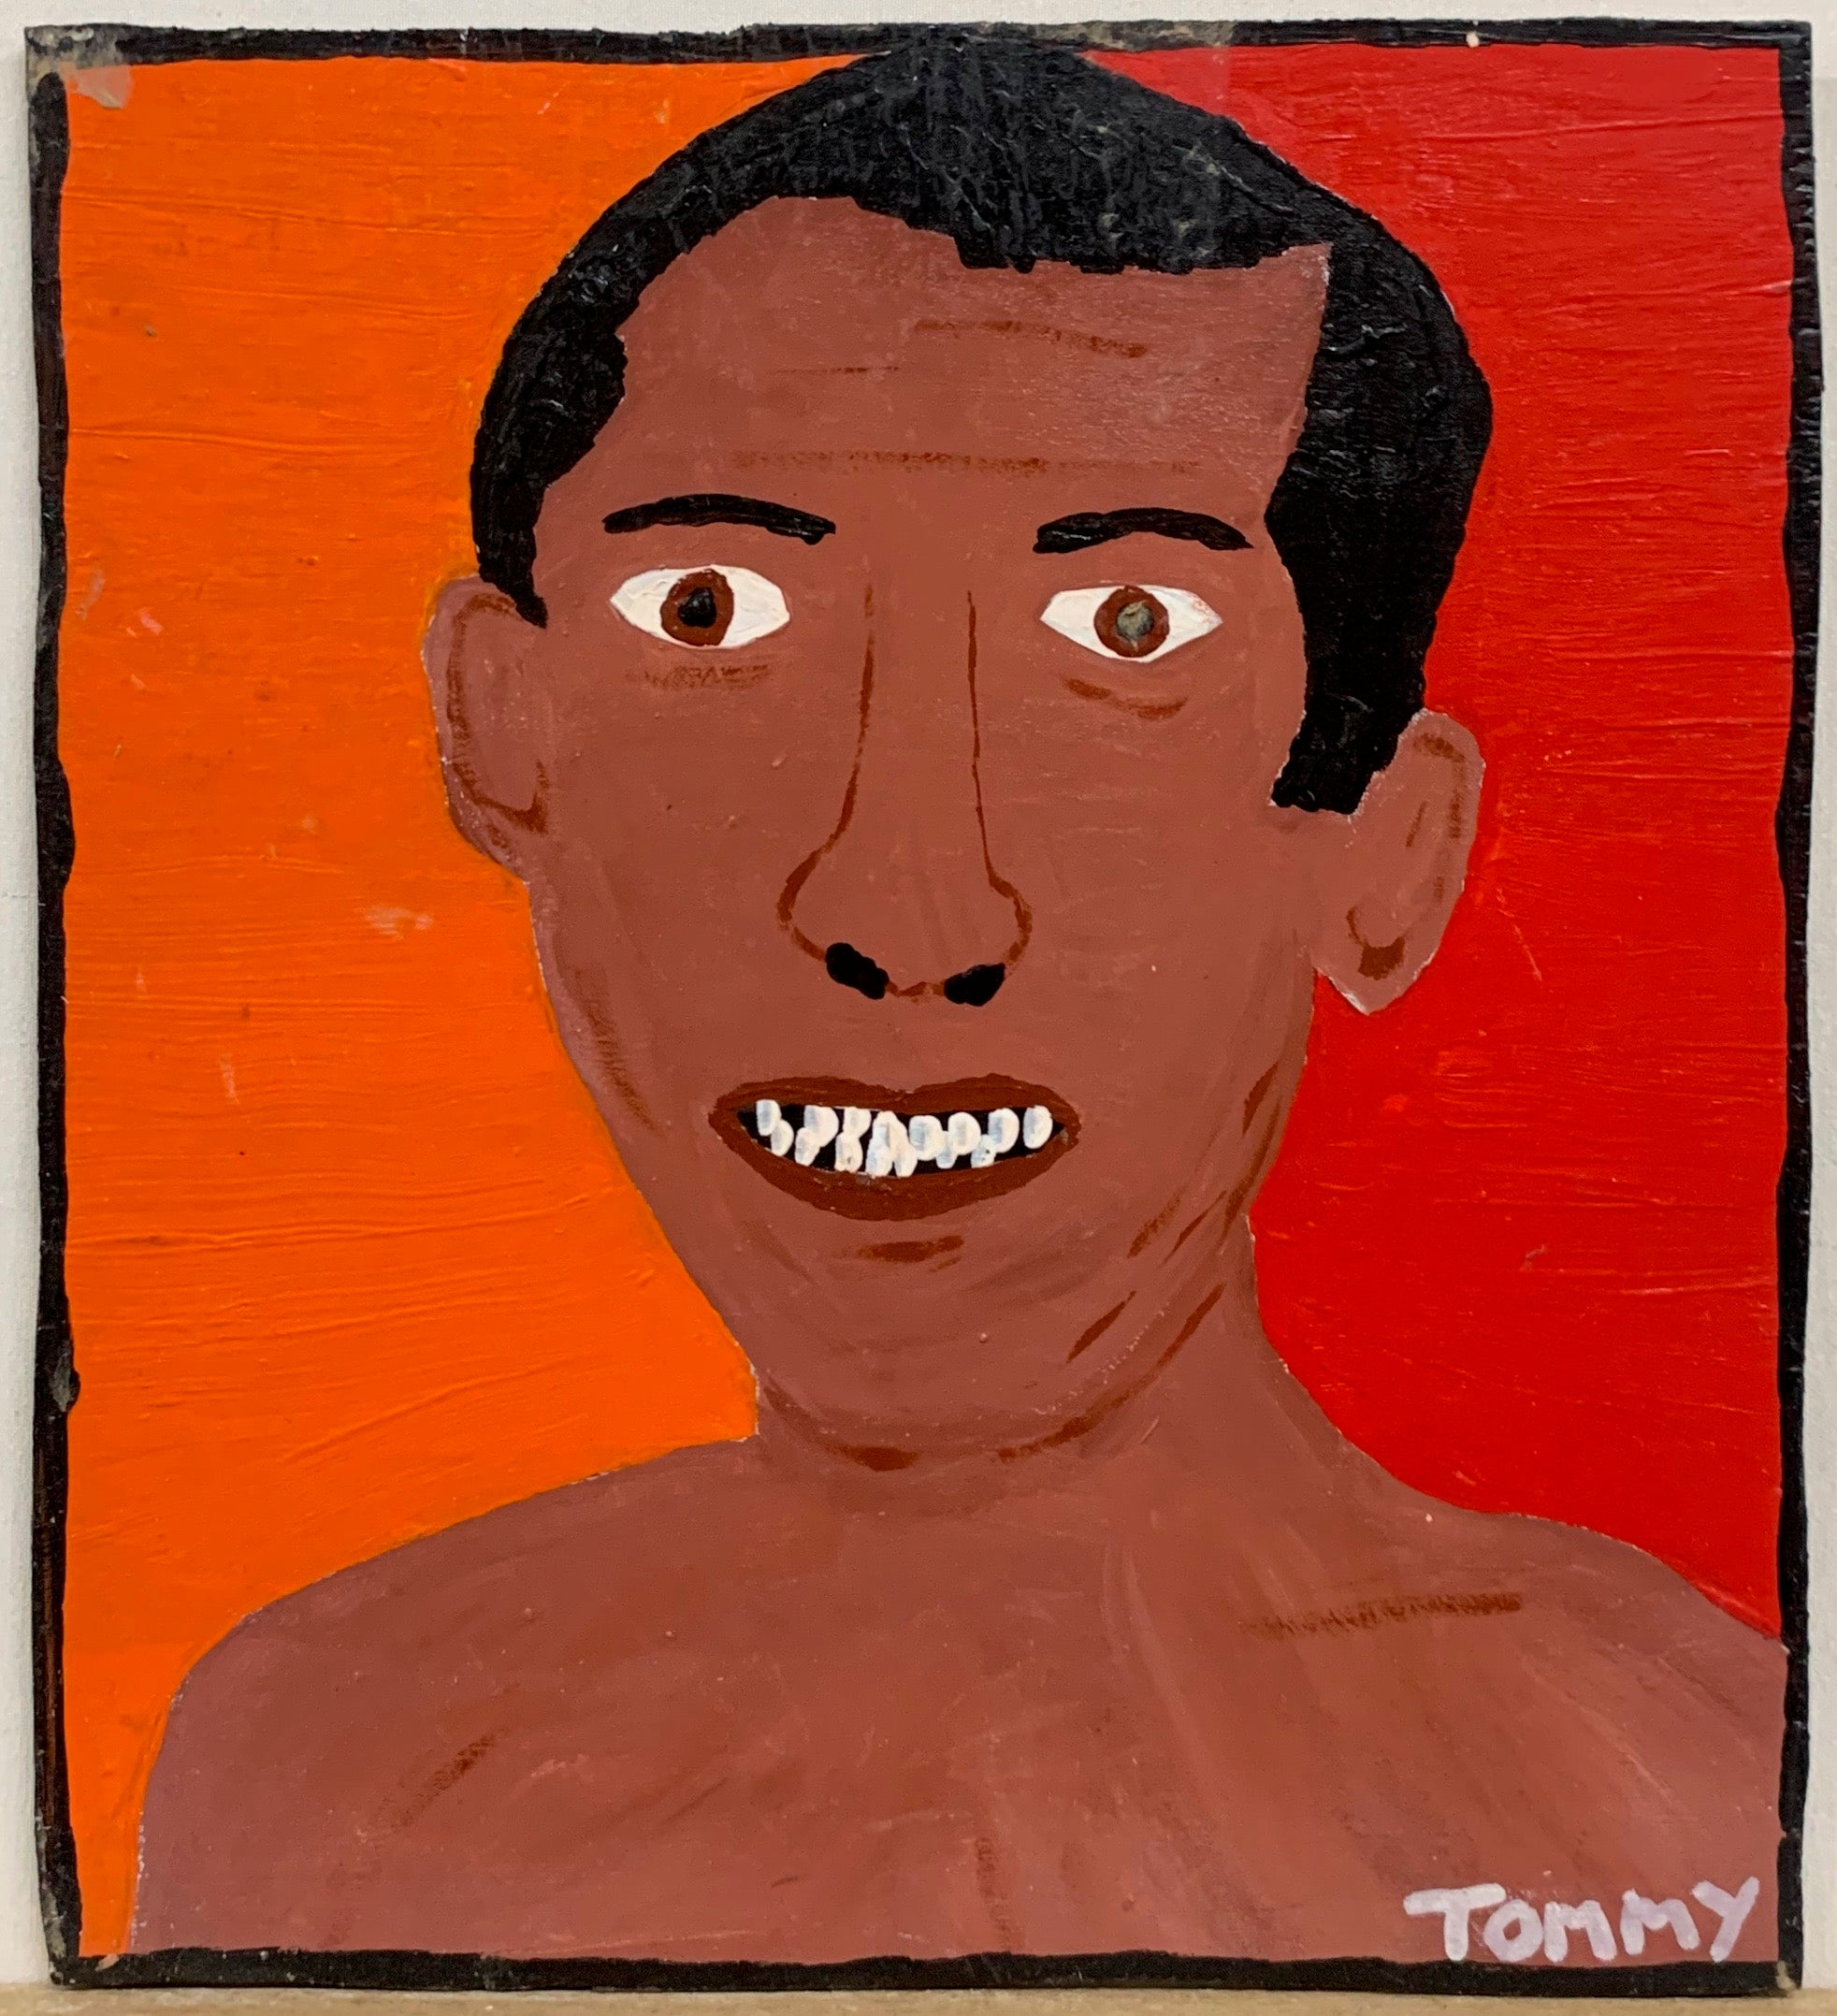 Portrait of a toples Duke Kahanamoku on a red background.